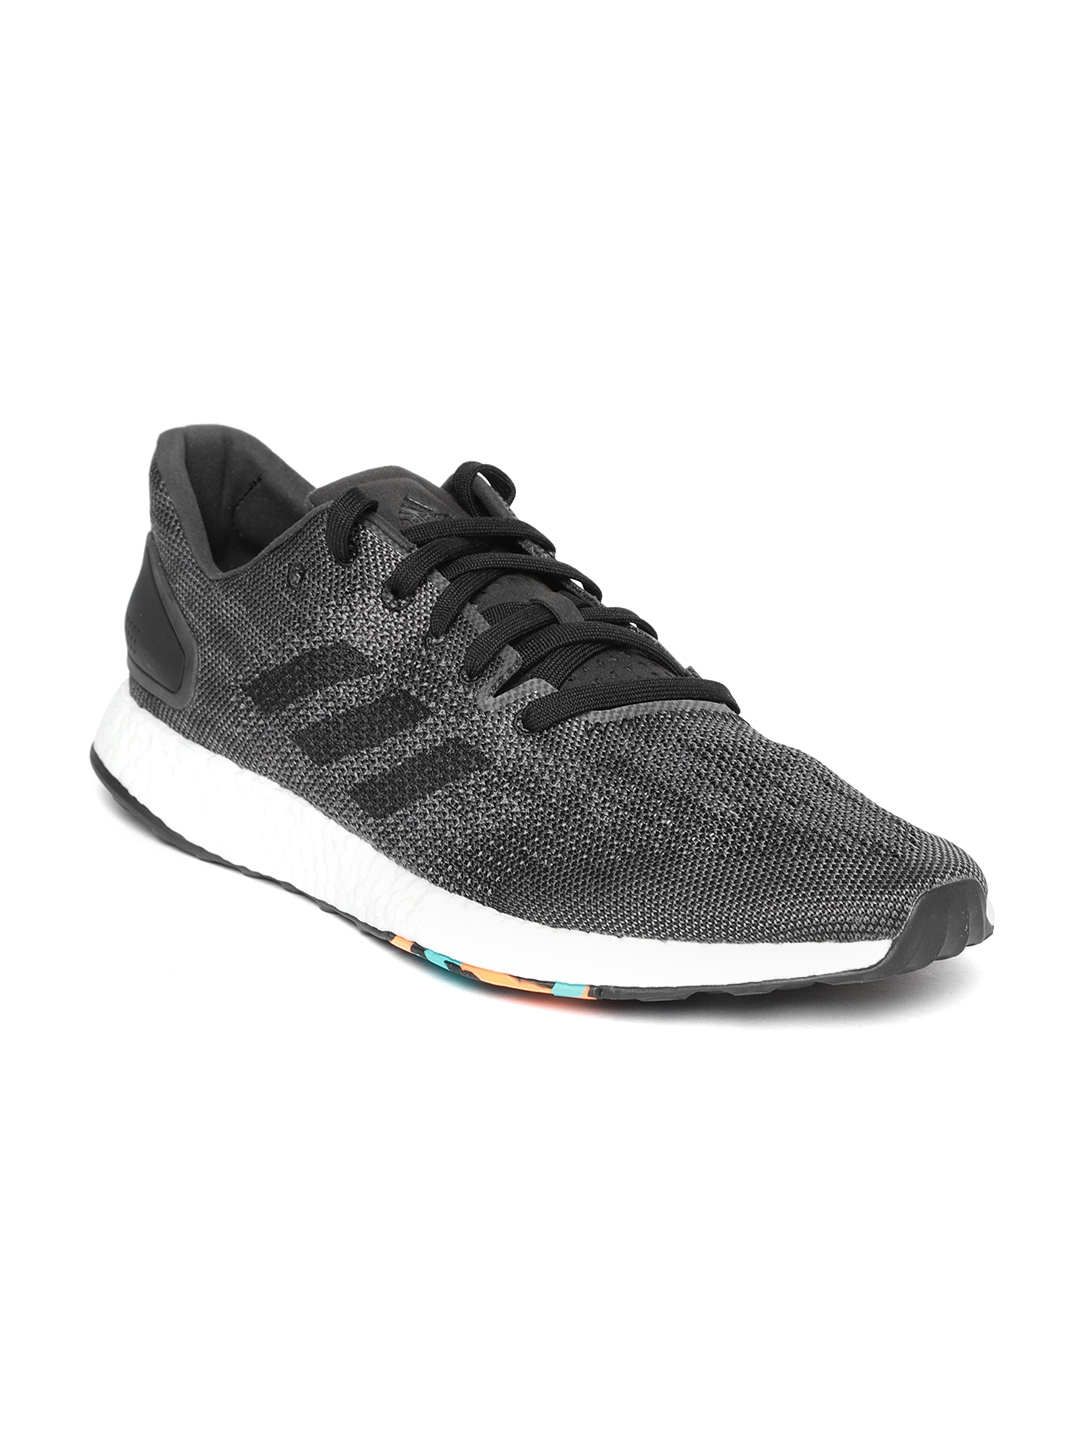 5f6d7d1904d95 Buy ADIDAS Men Charcoal Grey PureBoost DPR Running Shoes - Sports ...